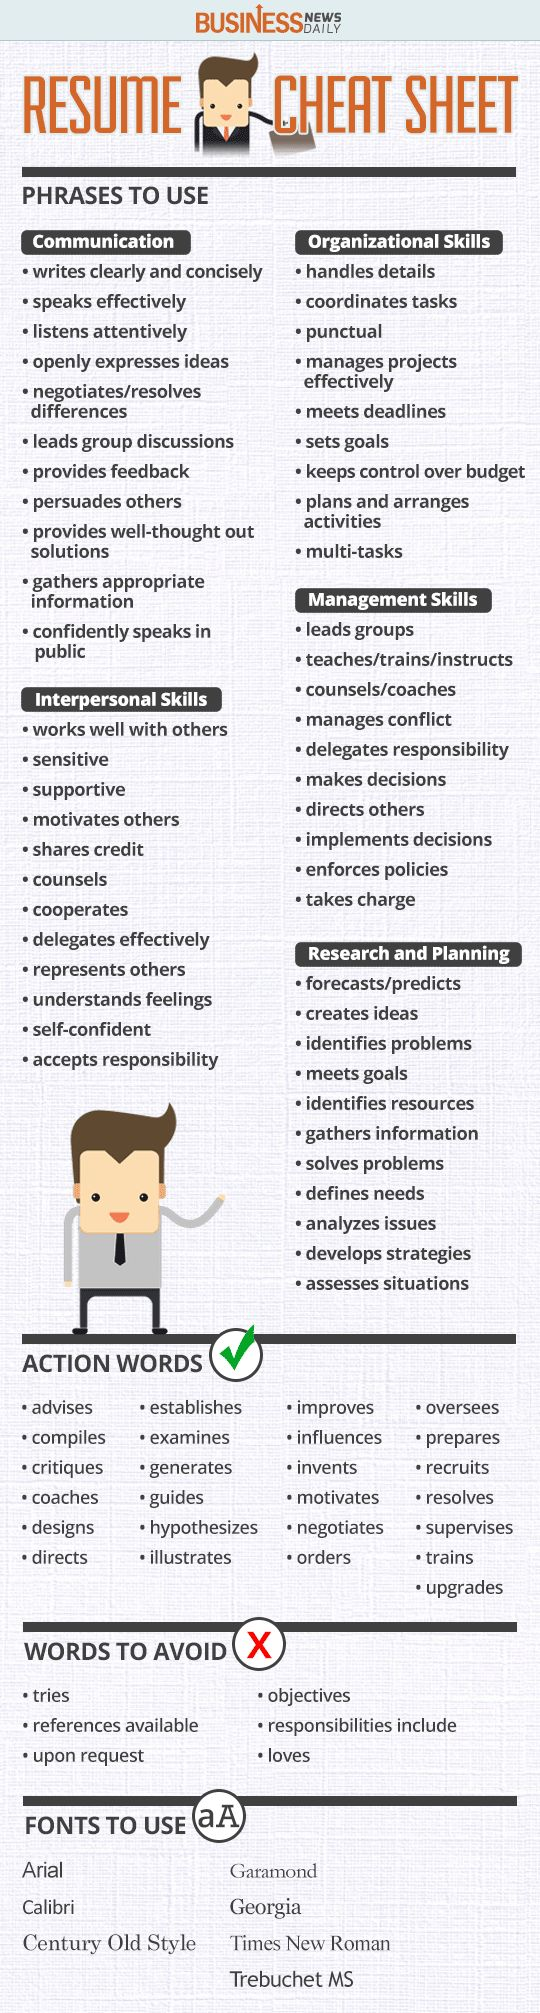 Opposenewapstandardsus  Wonderful  Ideas About Resume On Pinterest  Cv Format Resume Cv And  With Glamorous Resume Cheat Sheet Infographic Andrews Almost Done With A Complete Unit On Employment Which With Captivating Beautiful Resume Also Data Analyst Resume Sample In Addition Preparing A Resume And Good Resume Objective Statements As Well As Visual Merchandiser Resume Additionally Medical Resume Templates From Pinterestcom With Opposenewapstandardsus  Glamorous  Ideas About Resume On Pinterest  Cv Format Resume Cv And  With Captivating Resume Cheat Sheet Infographic Andrews Almost Done With A Complete Unit On Employment Which And Wonderful Beautiful Resume Also Data Analyst Resume Sample In Addition Preparing A Resume From Pinterestcom